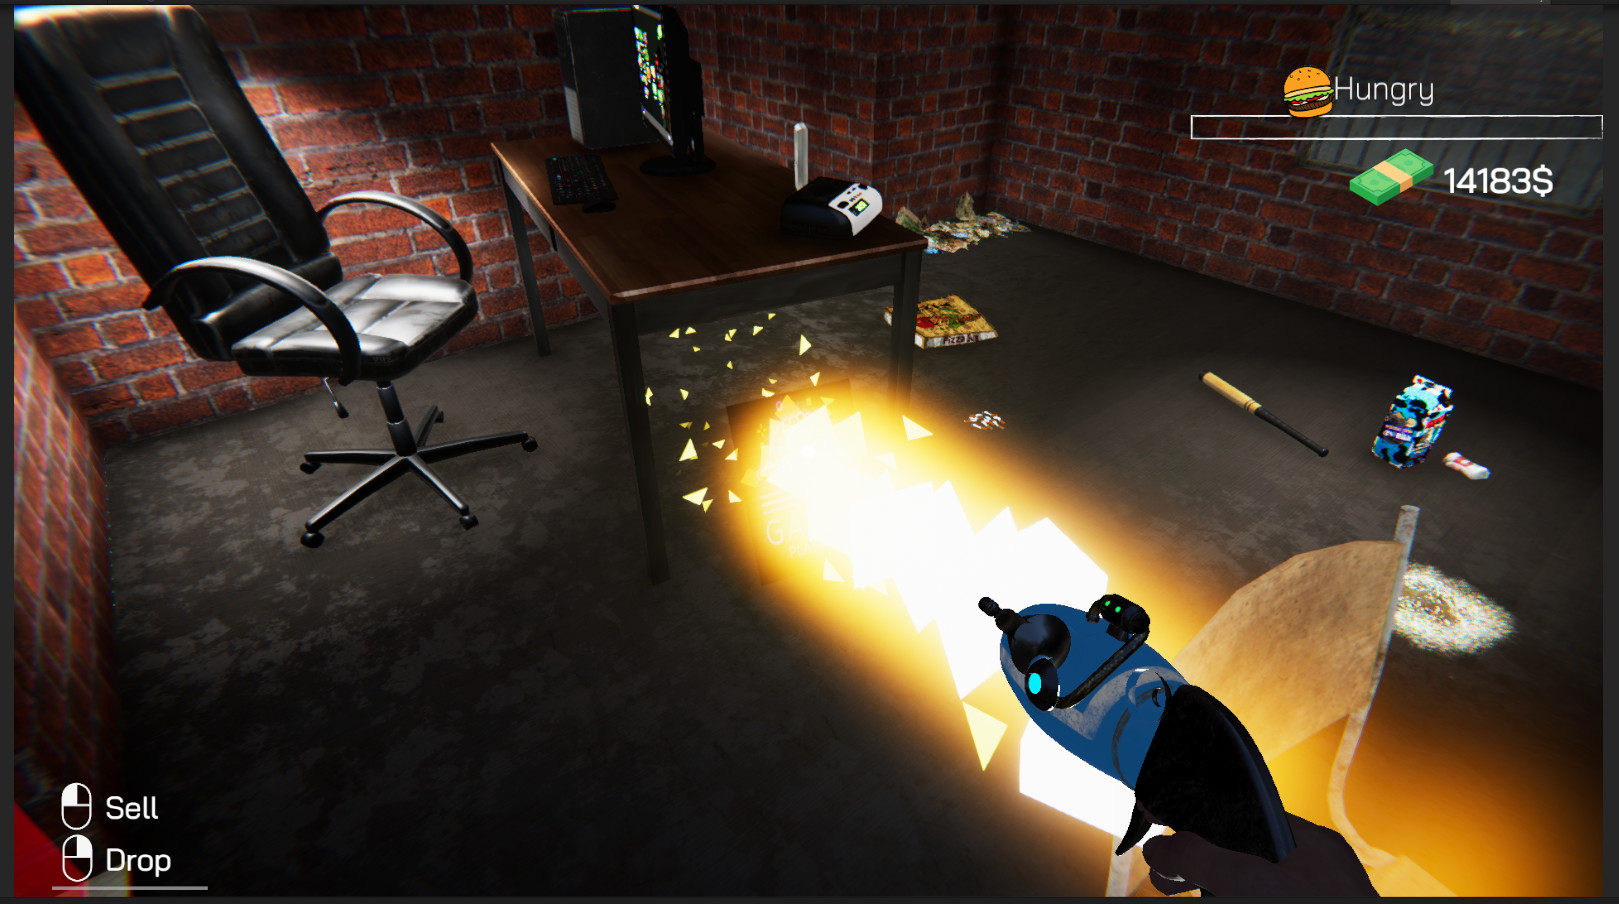 Internet Cafe Simulator Screenshot 3